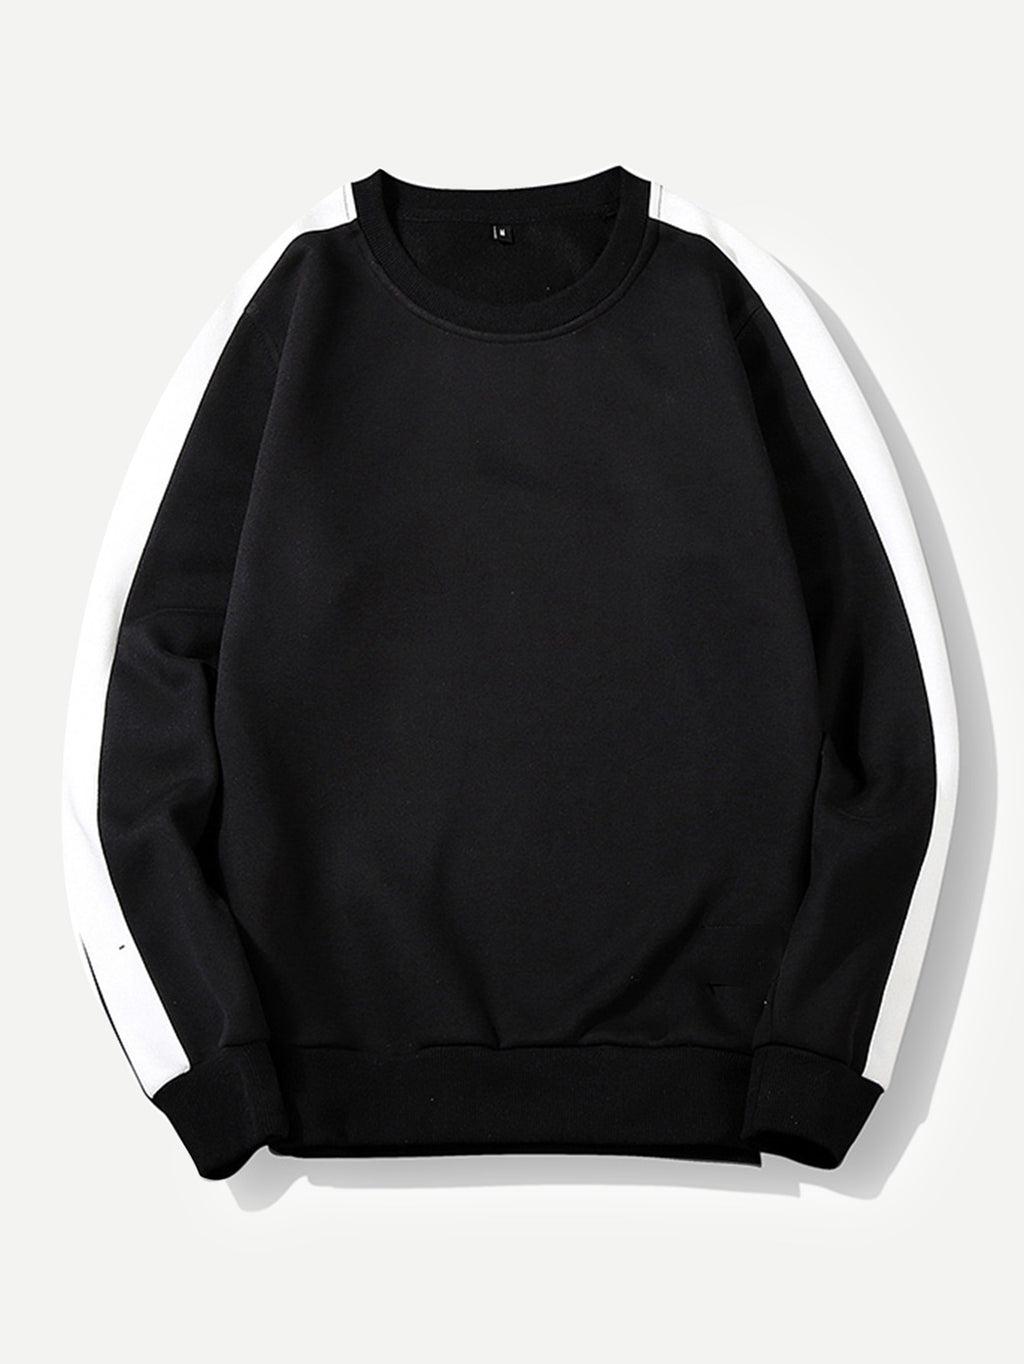 Men Cut And Sew Panel Sweatshirt-Sunshine's Boutique & Gifts